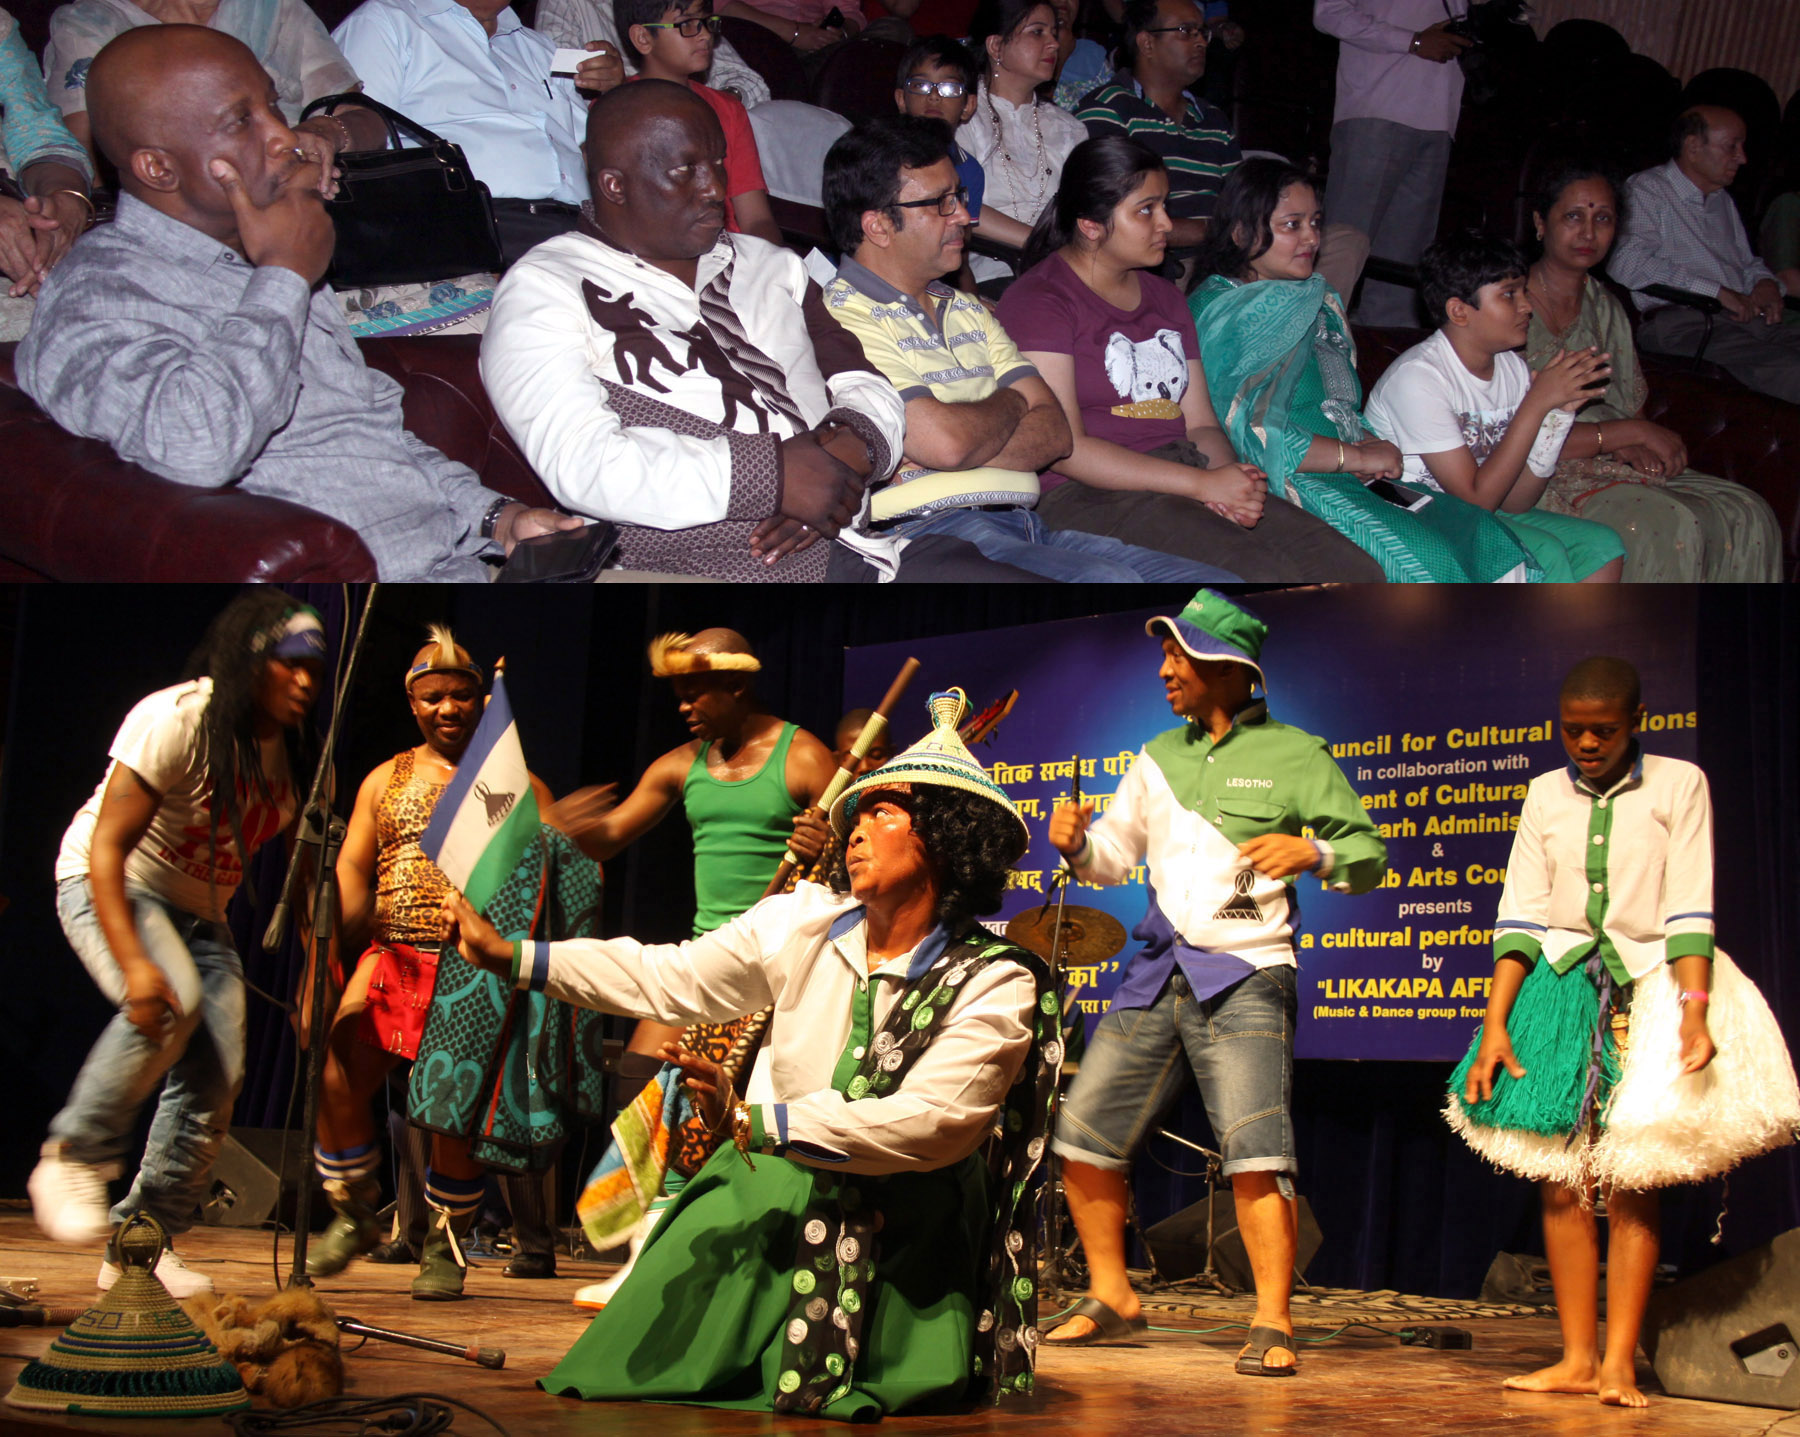 UT Home Secretary, Mr. Anurag Agarwal alongwith senior officers witnessing the cultural performance by �LIKAKAPA AFRICA� (Music & Dance Group from Lesotho) at Punjab Kala Bhawan, Sector-16, Chandigarh on Saturday, May 28, 2016.